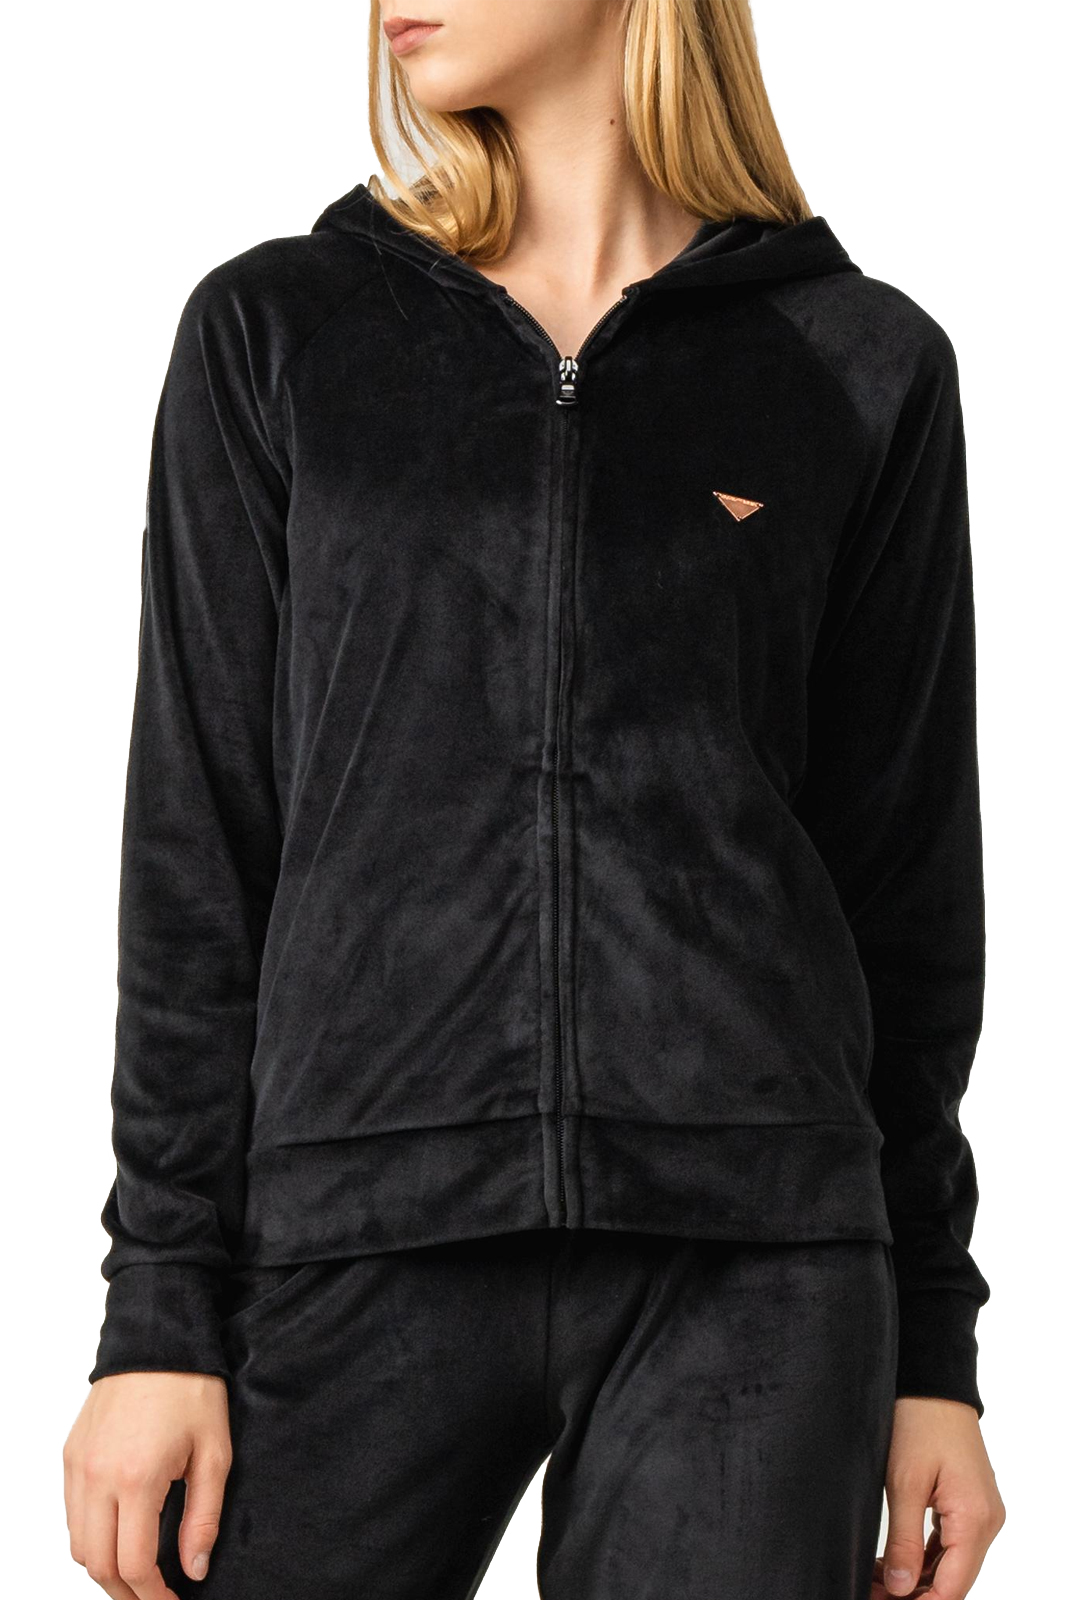 Sweat / sweat zippé  Emporio armani 163363 9A260 020 BLACK